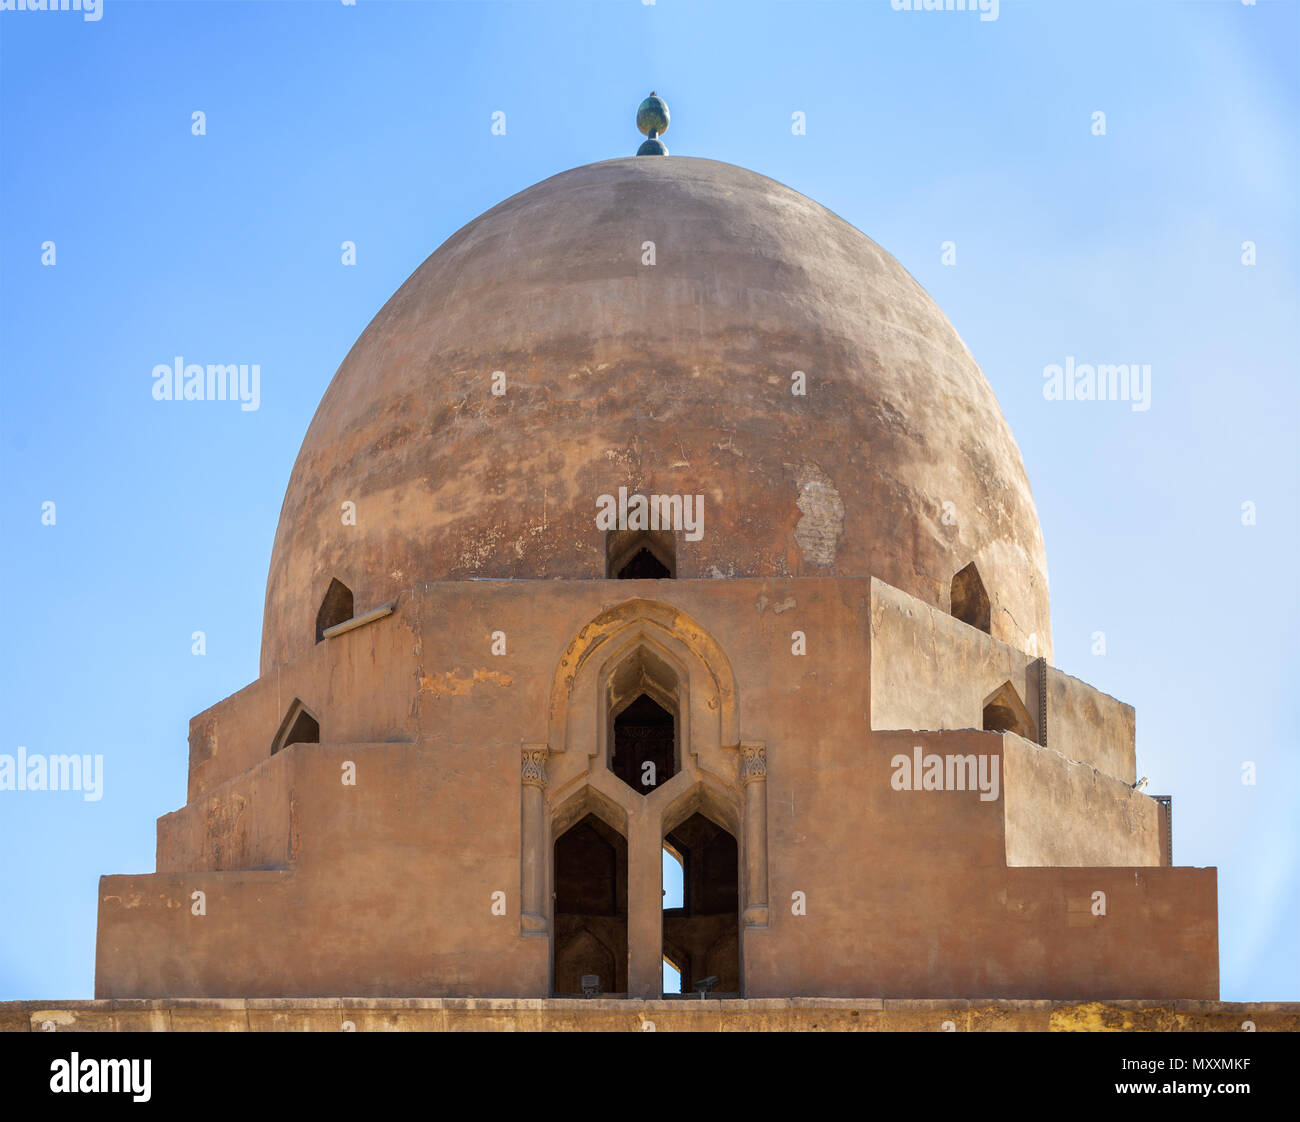 Dome of the ablution fountain of Ibn Tulun Mosque, located in Cairo, Egypt - Stock Image